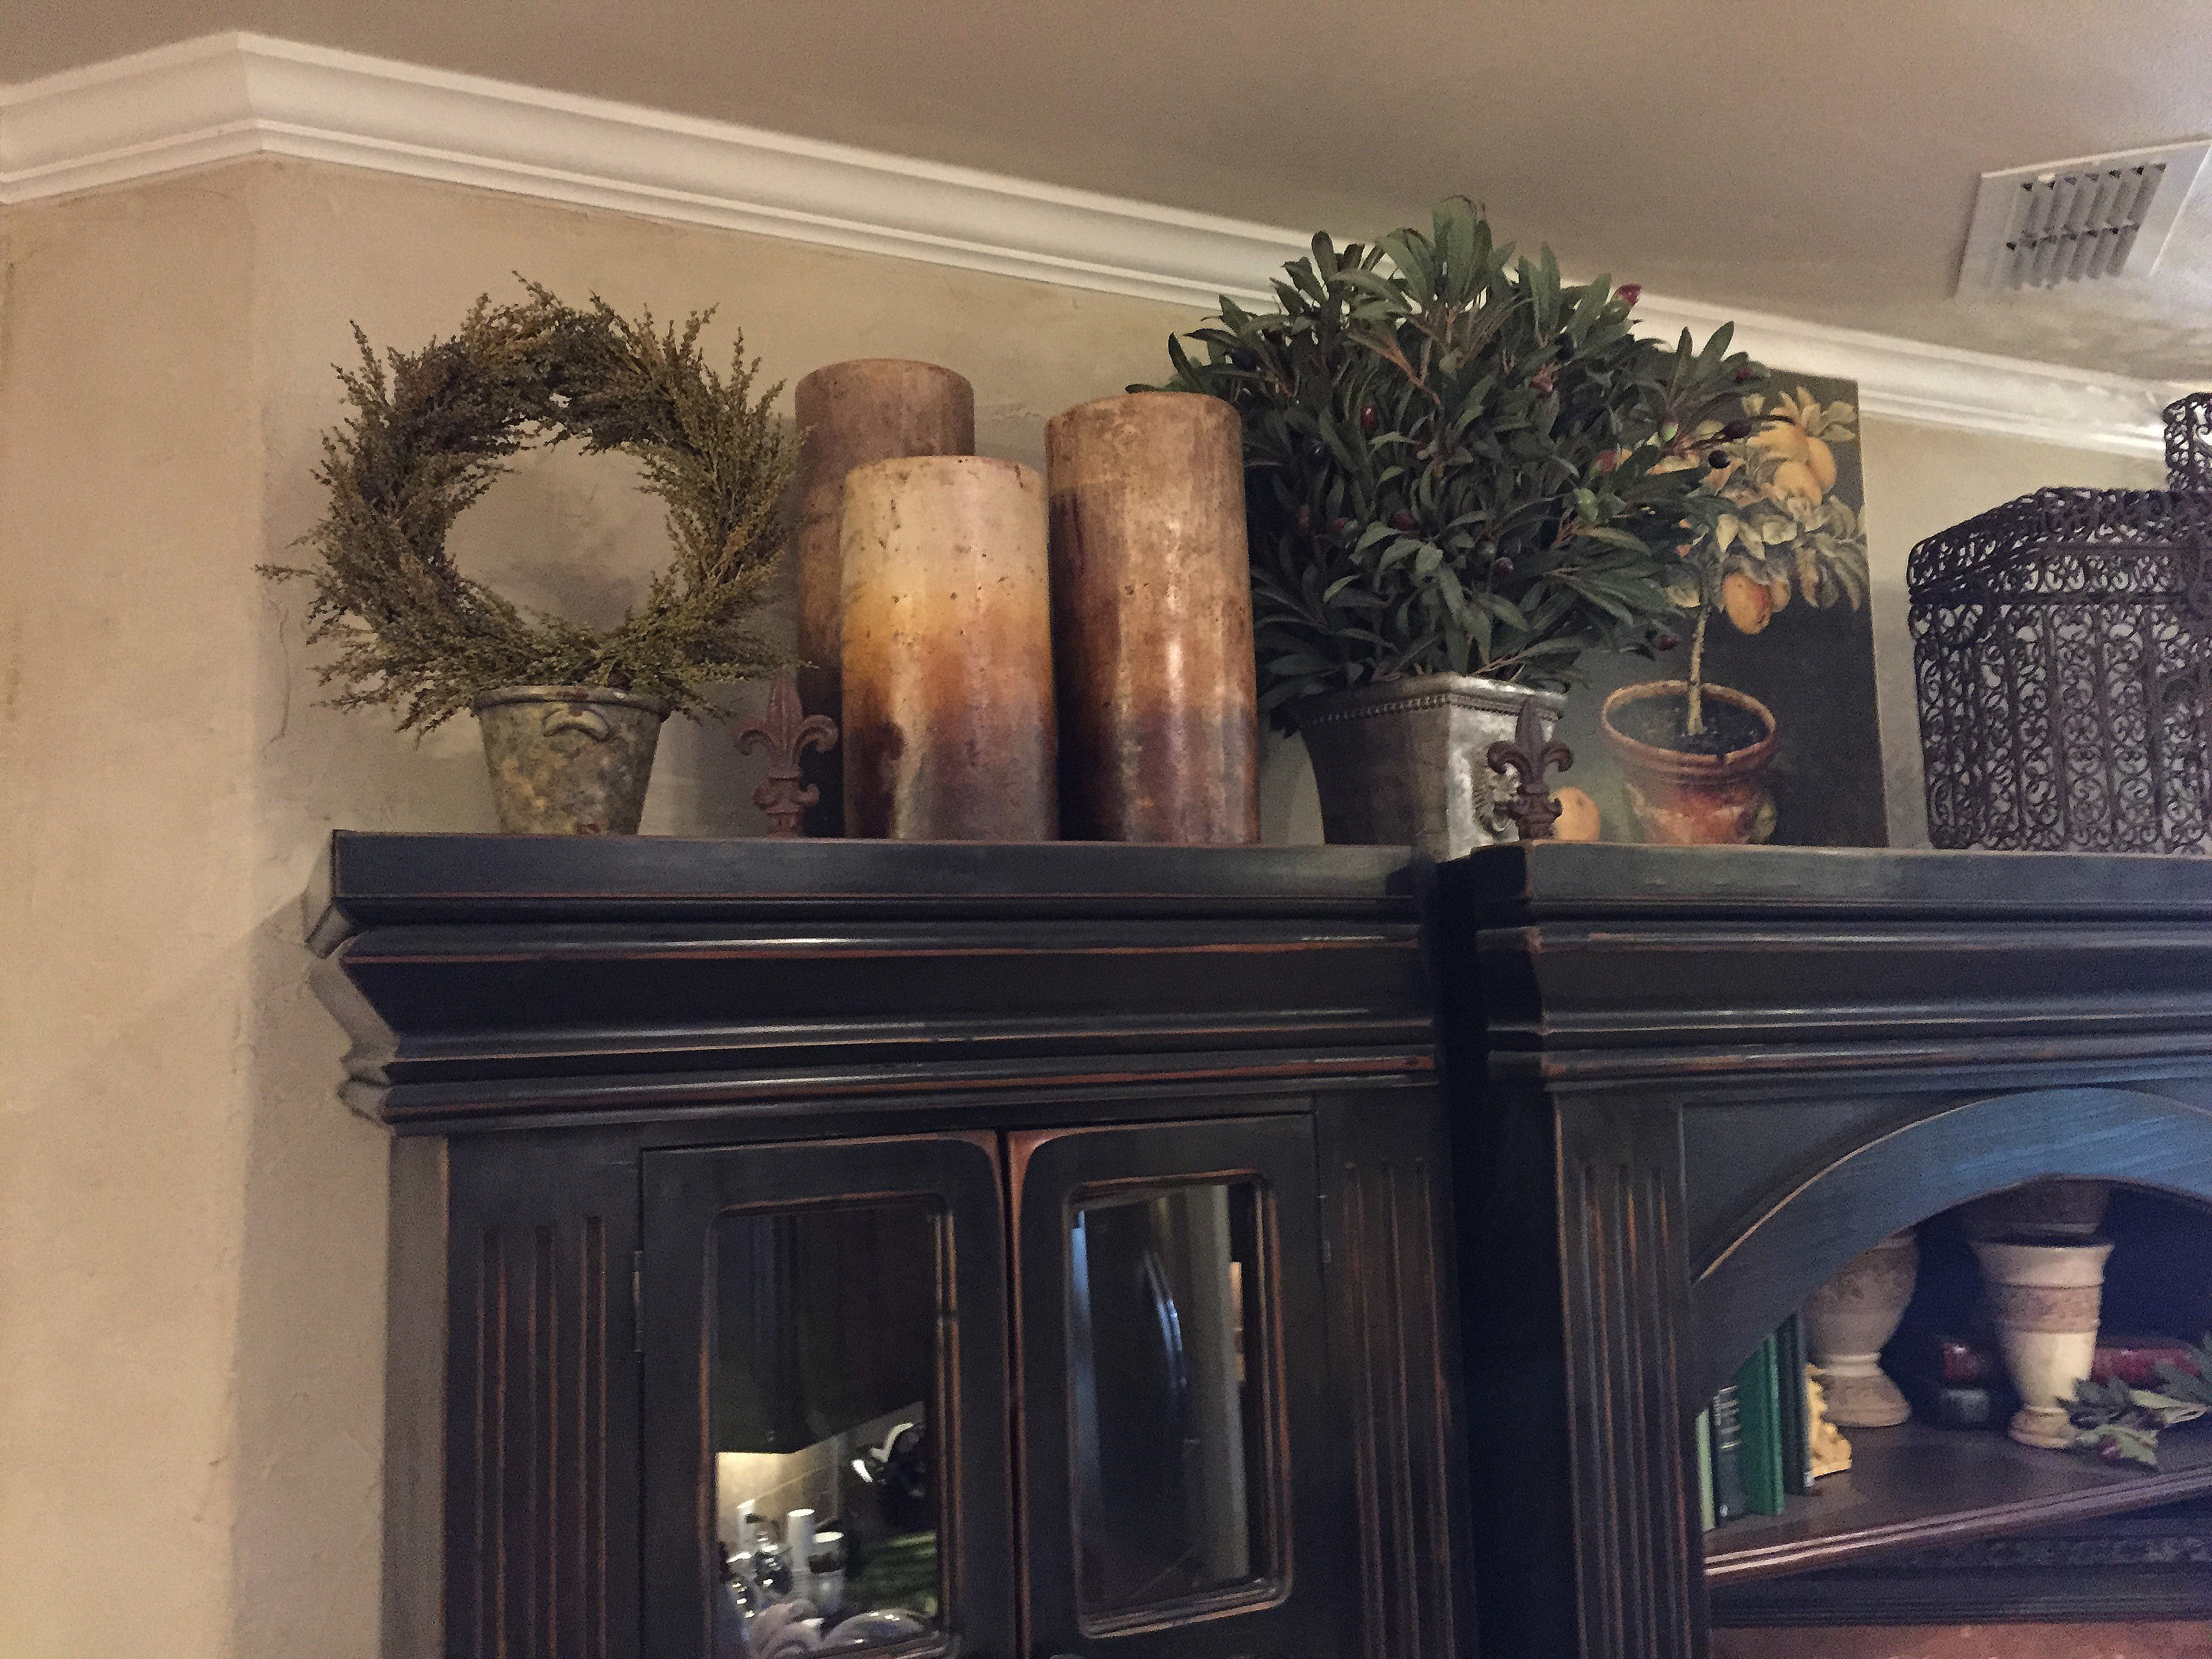 Large Items Are Better For Decorating Above Cabinets Because They Are More  Visible And Make A Big Impact On The Overall Theme Of The Area You Are  Decorating ...